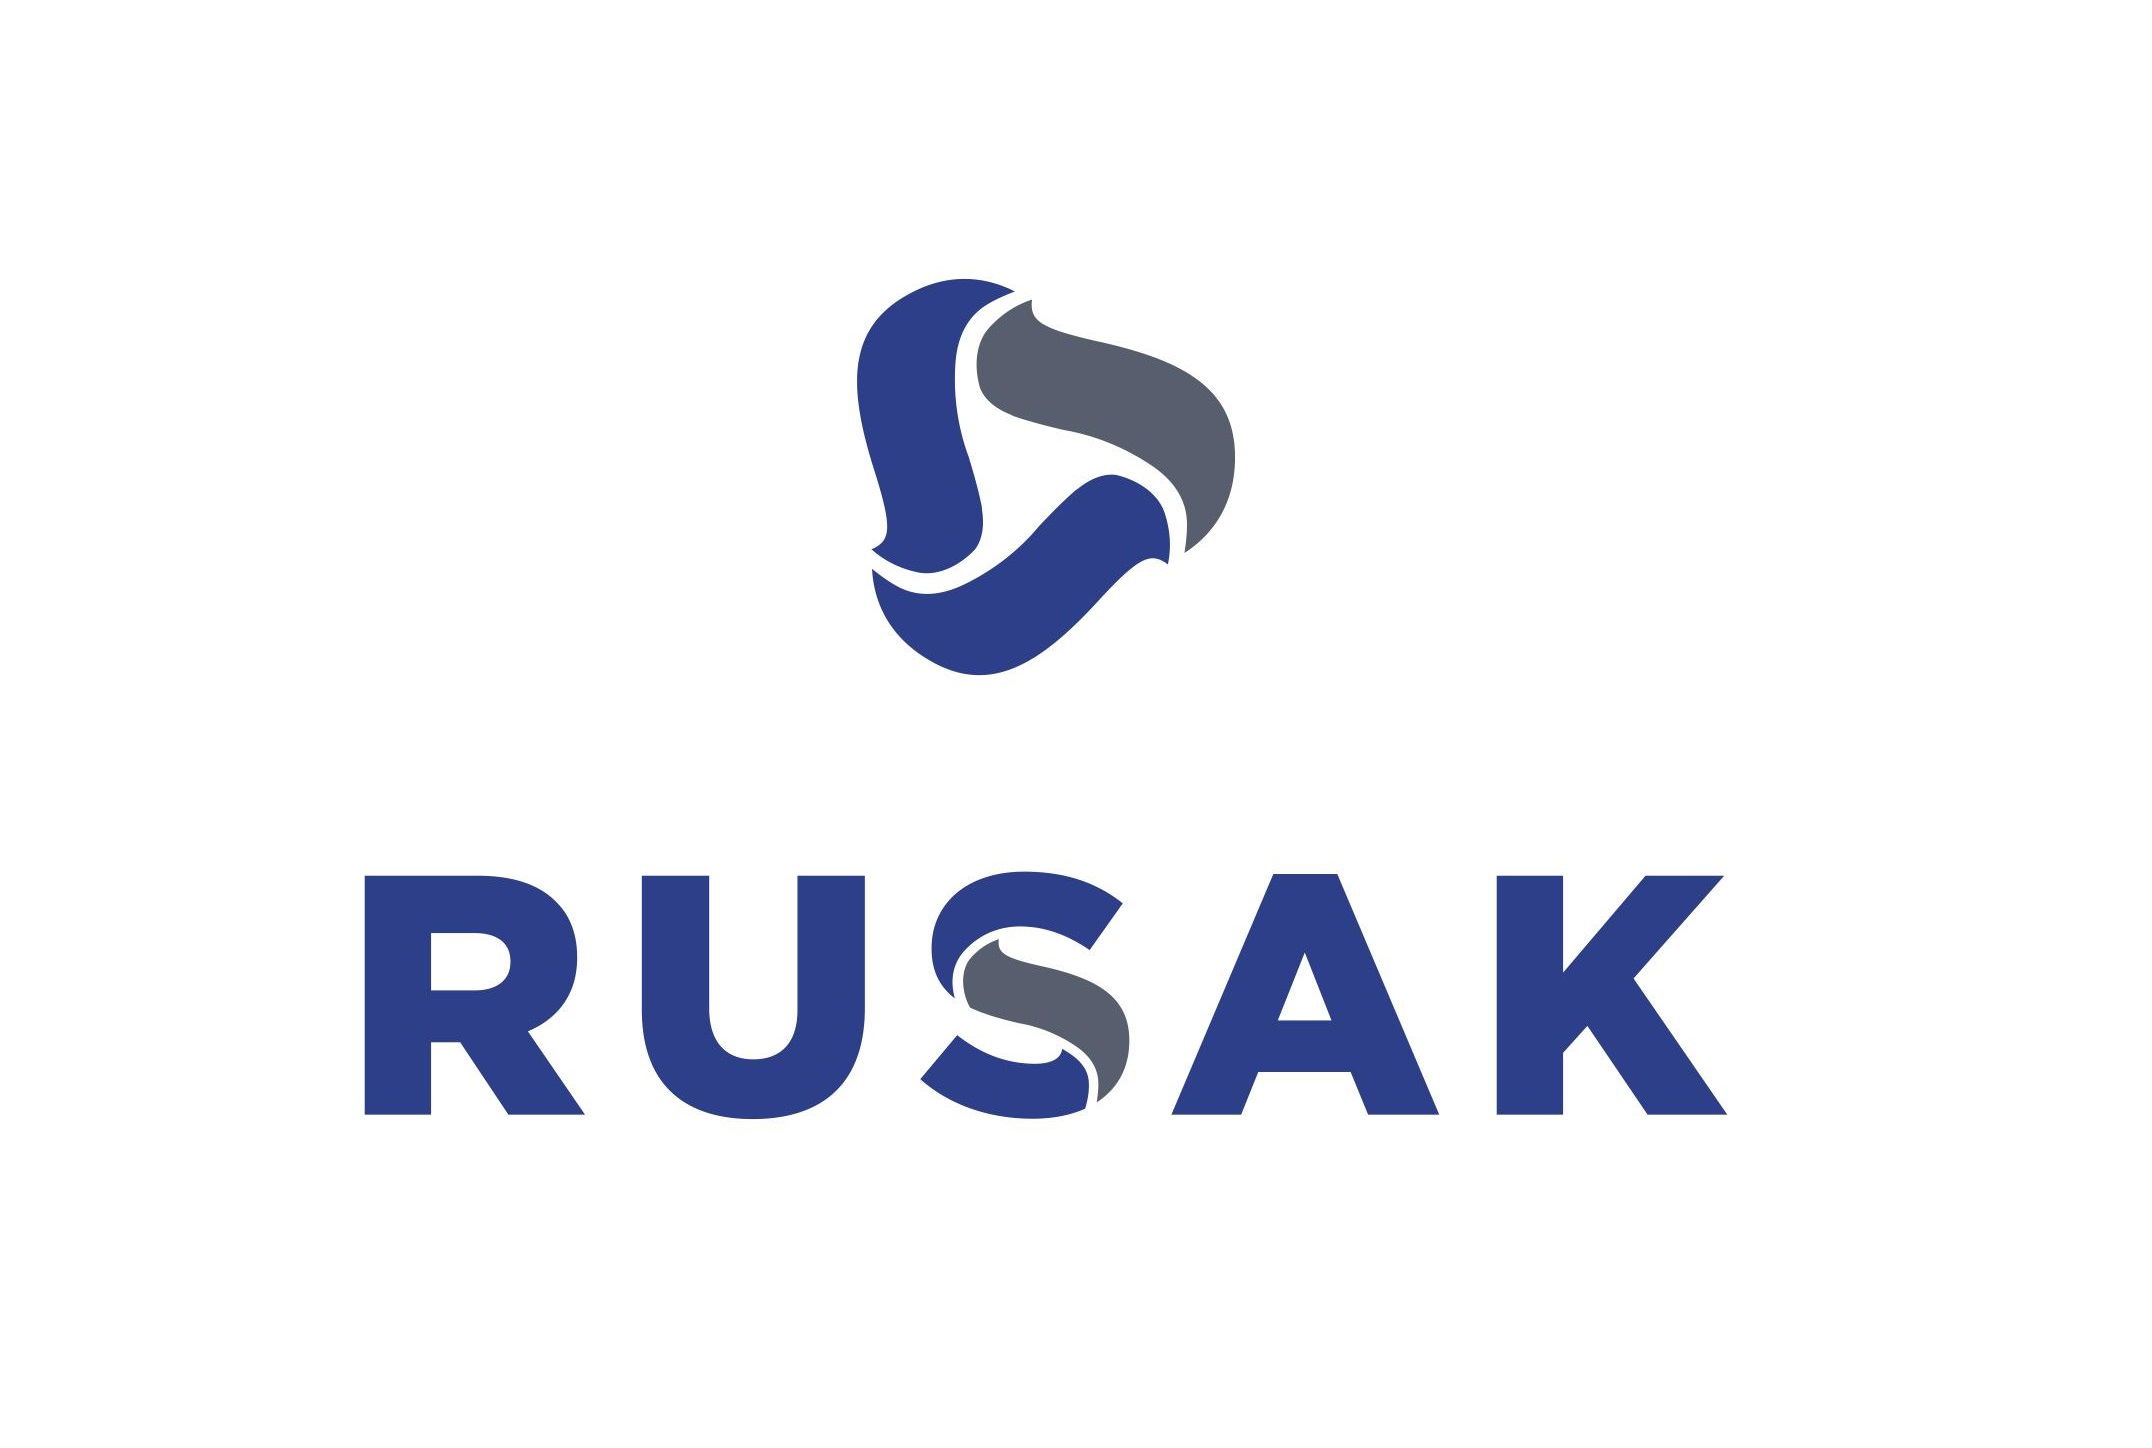 Rusak Business Services